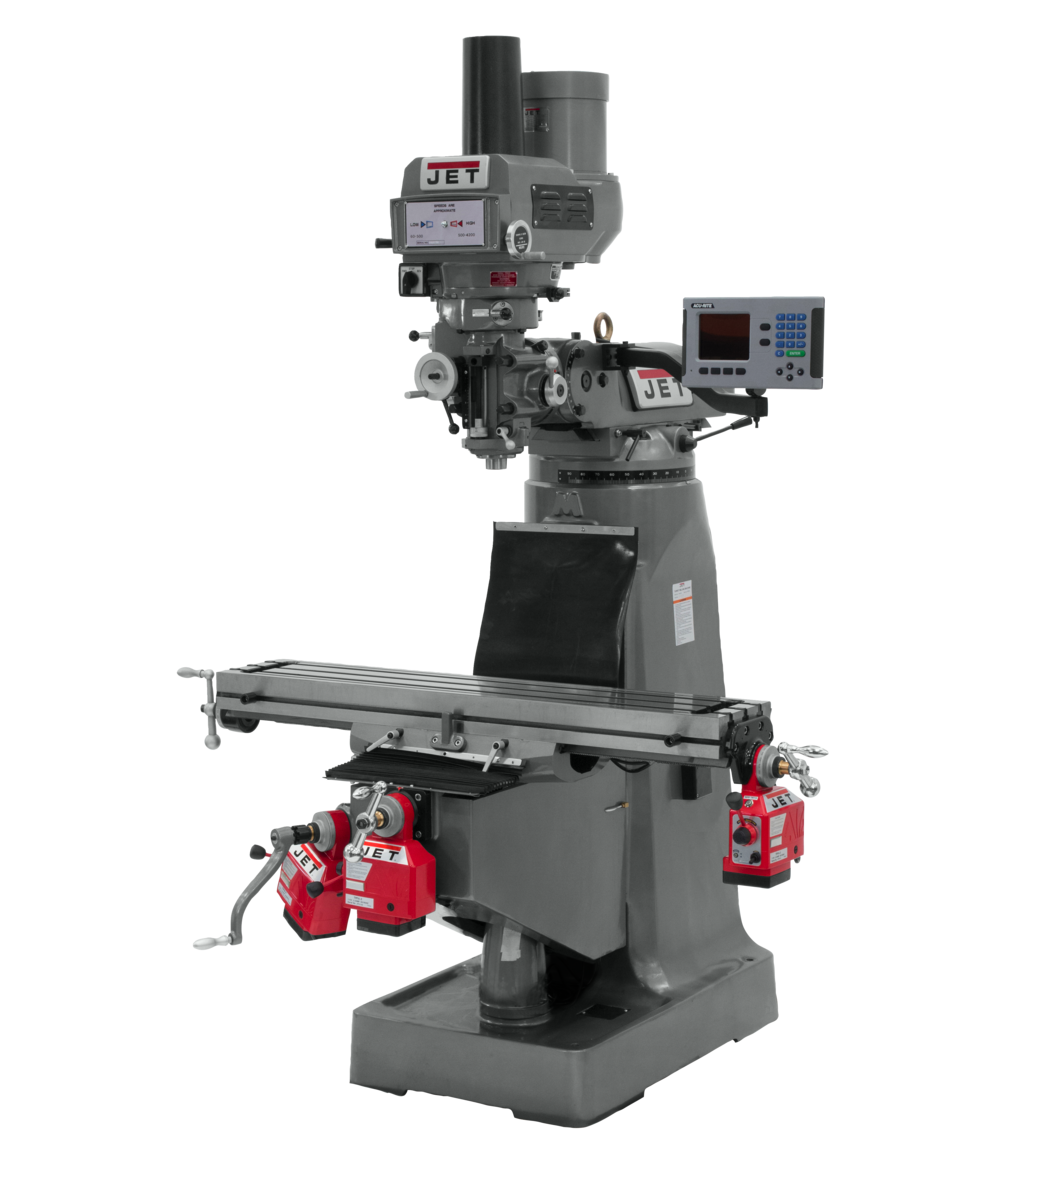 JTM-4VS Mill With 3-Axis ACU-RITE 203 DRO (Quill), X, Y and Z-Axis Powerfeeds With Power Drawbar